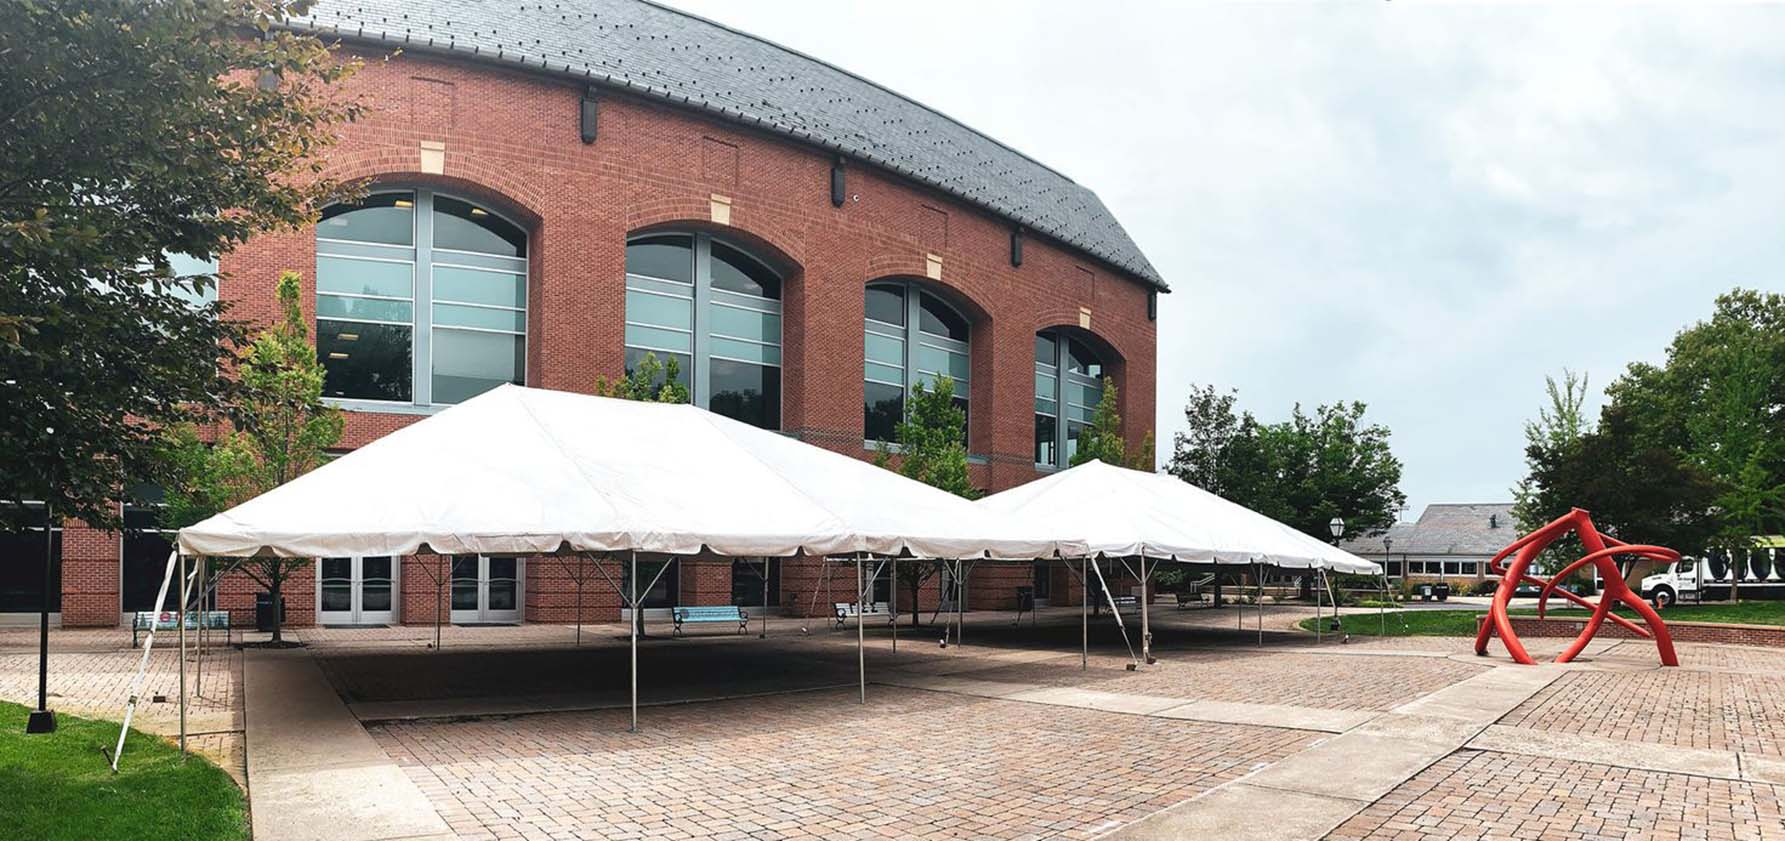 Tents for outdoor gatherings stand outside the Priscilla Payne Hurd Academic Center.